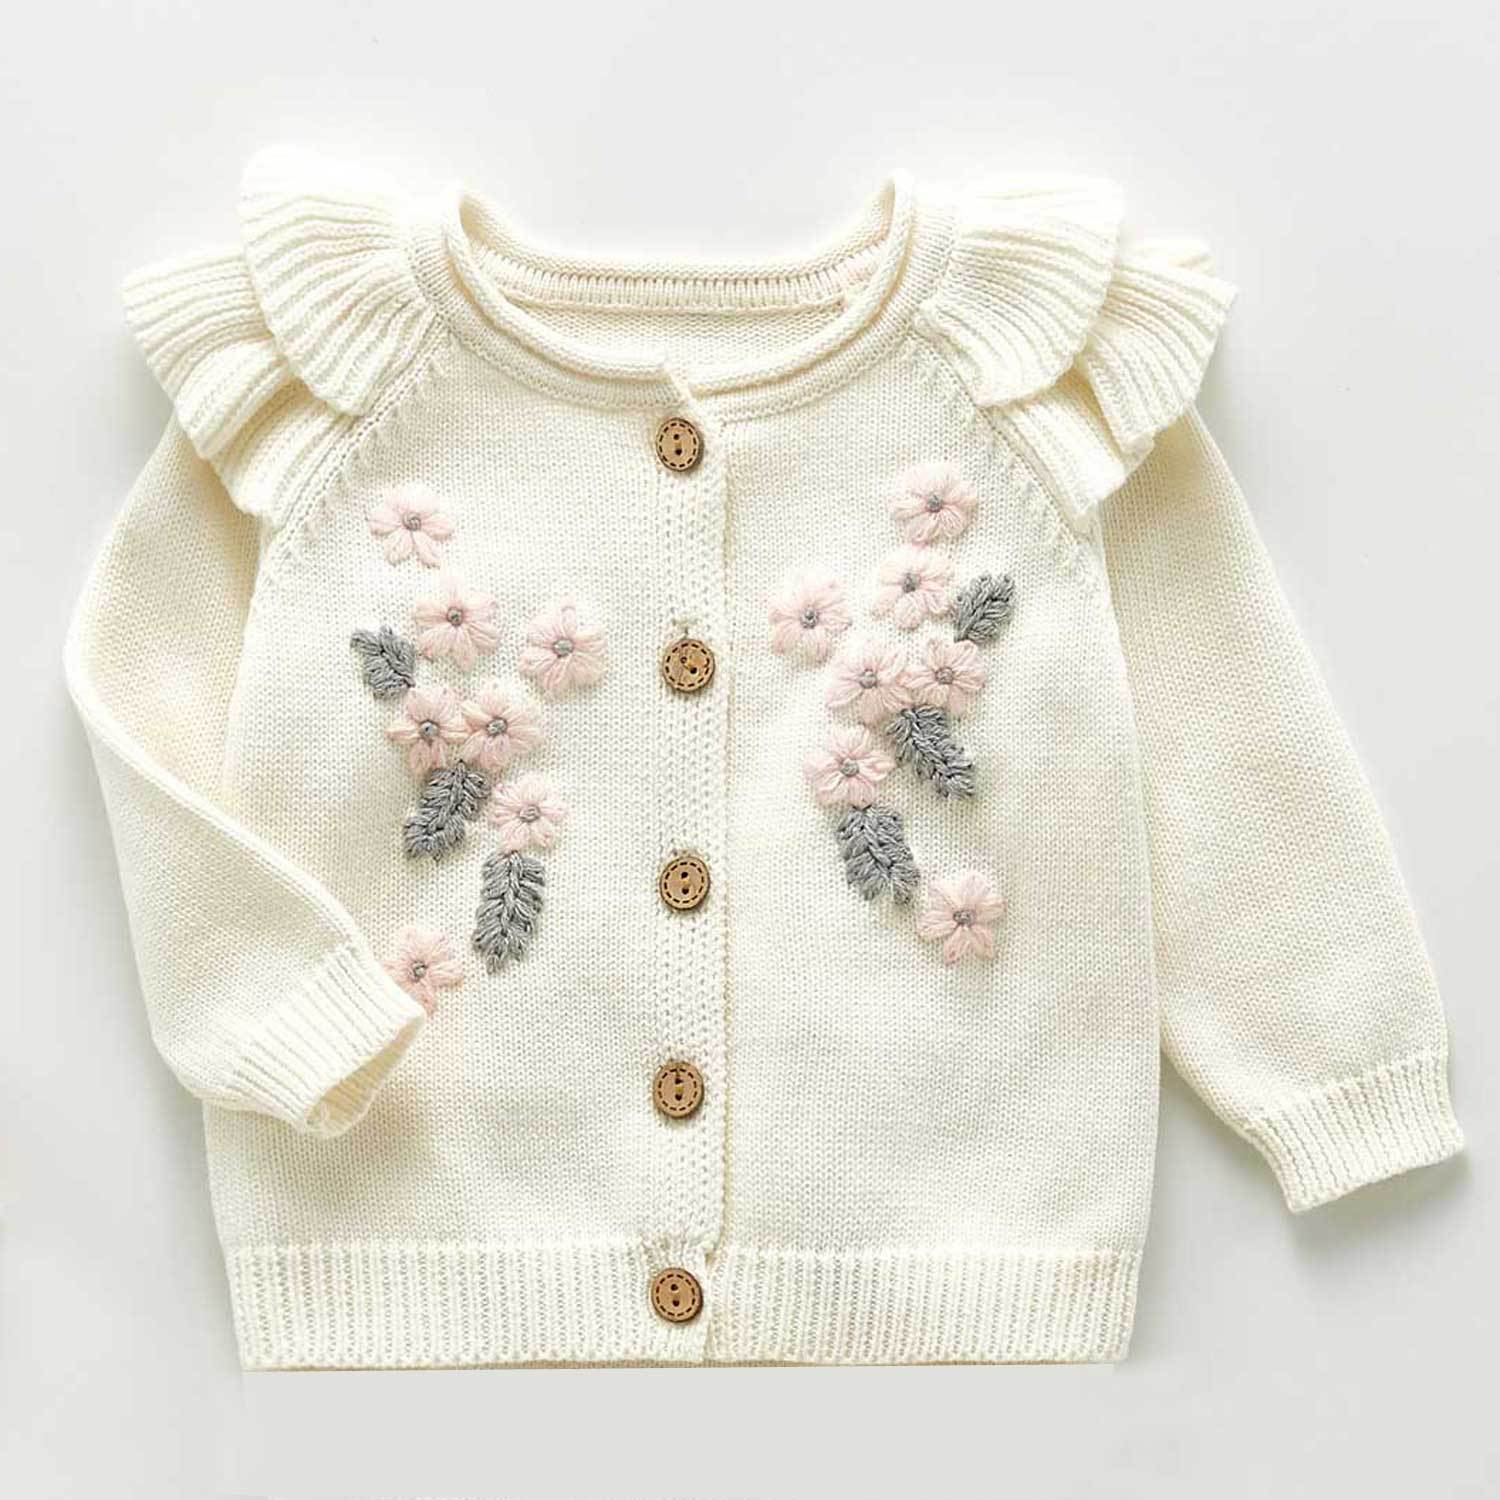 Cutest Knitted Sweater & Jumpsuit,6M to 3T.